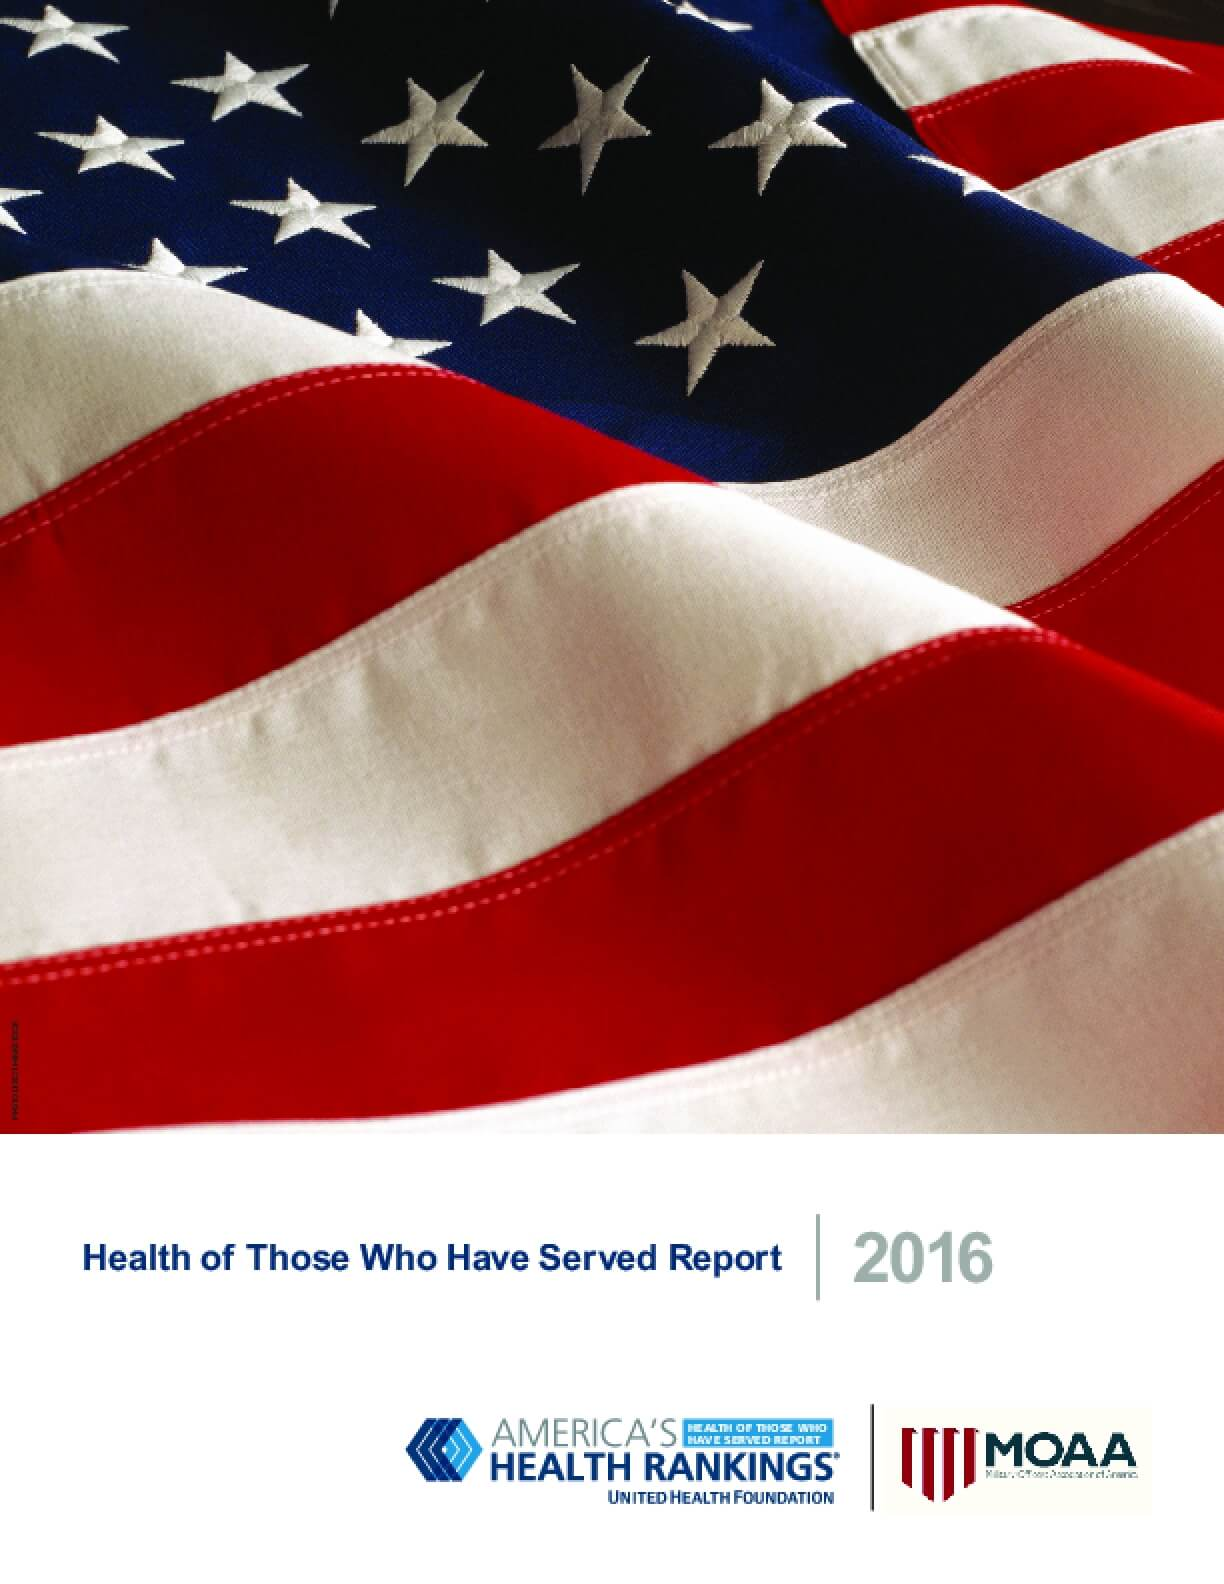 Health of Those Who Have Served Report 2016